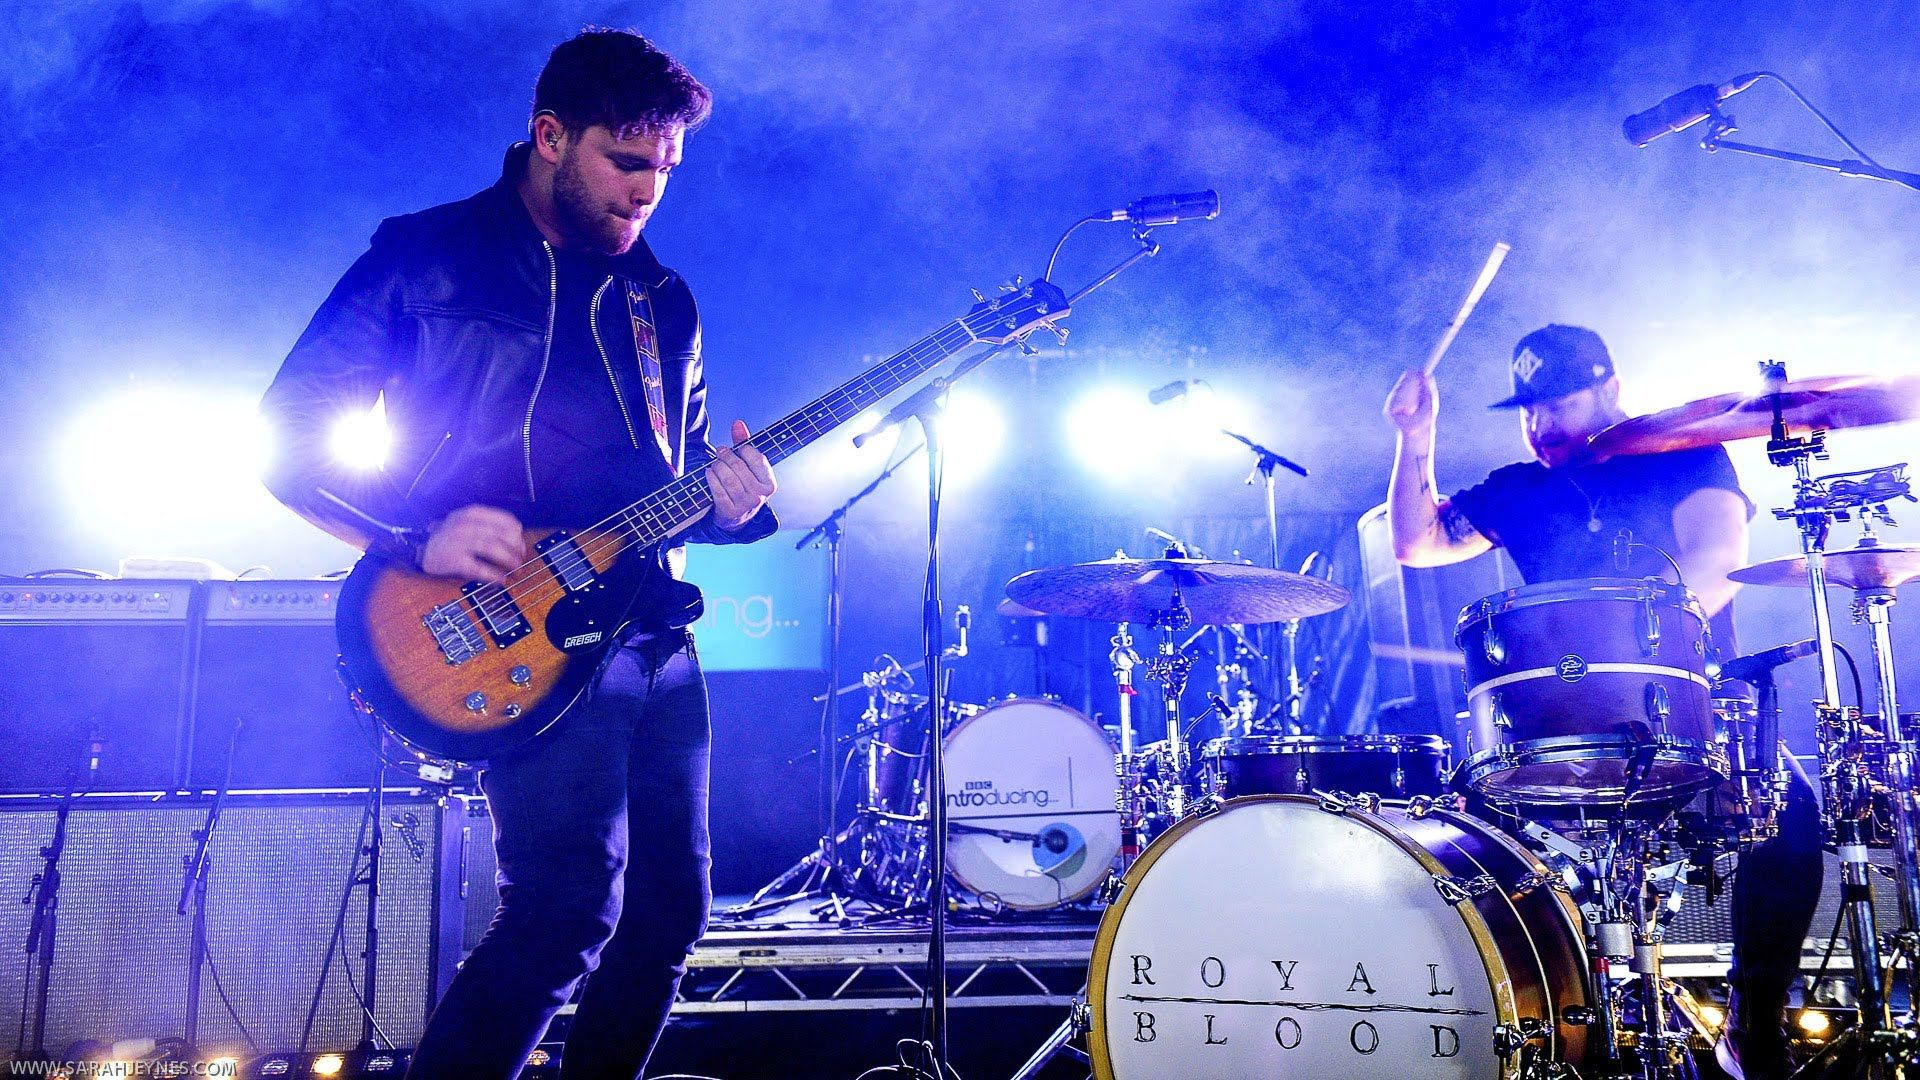 Royal Blood - Come On Over (Radio 1's Big Weekend 2014) - YouTube